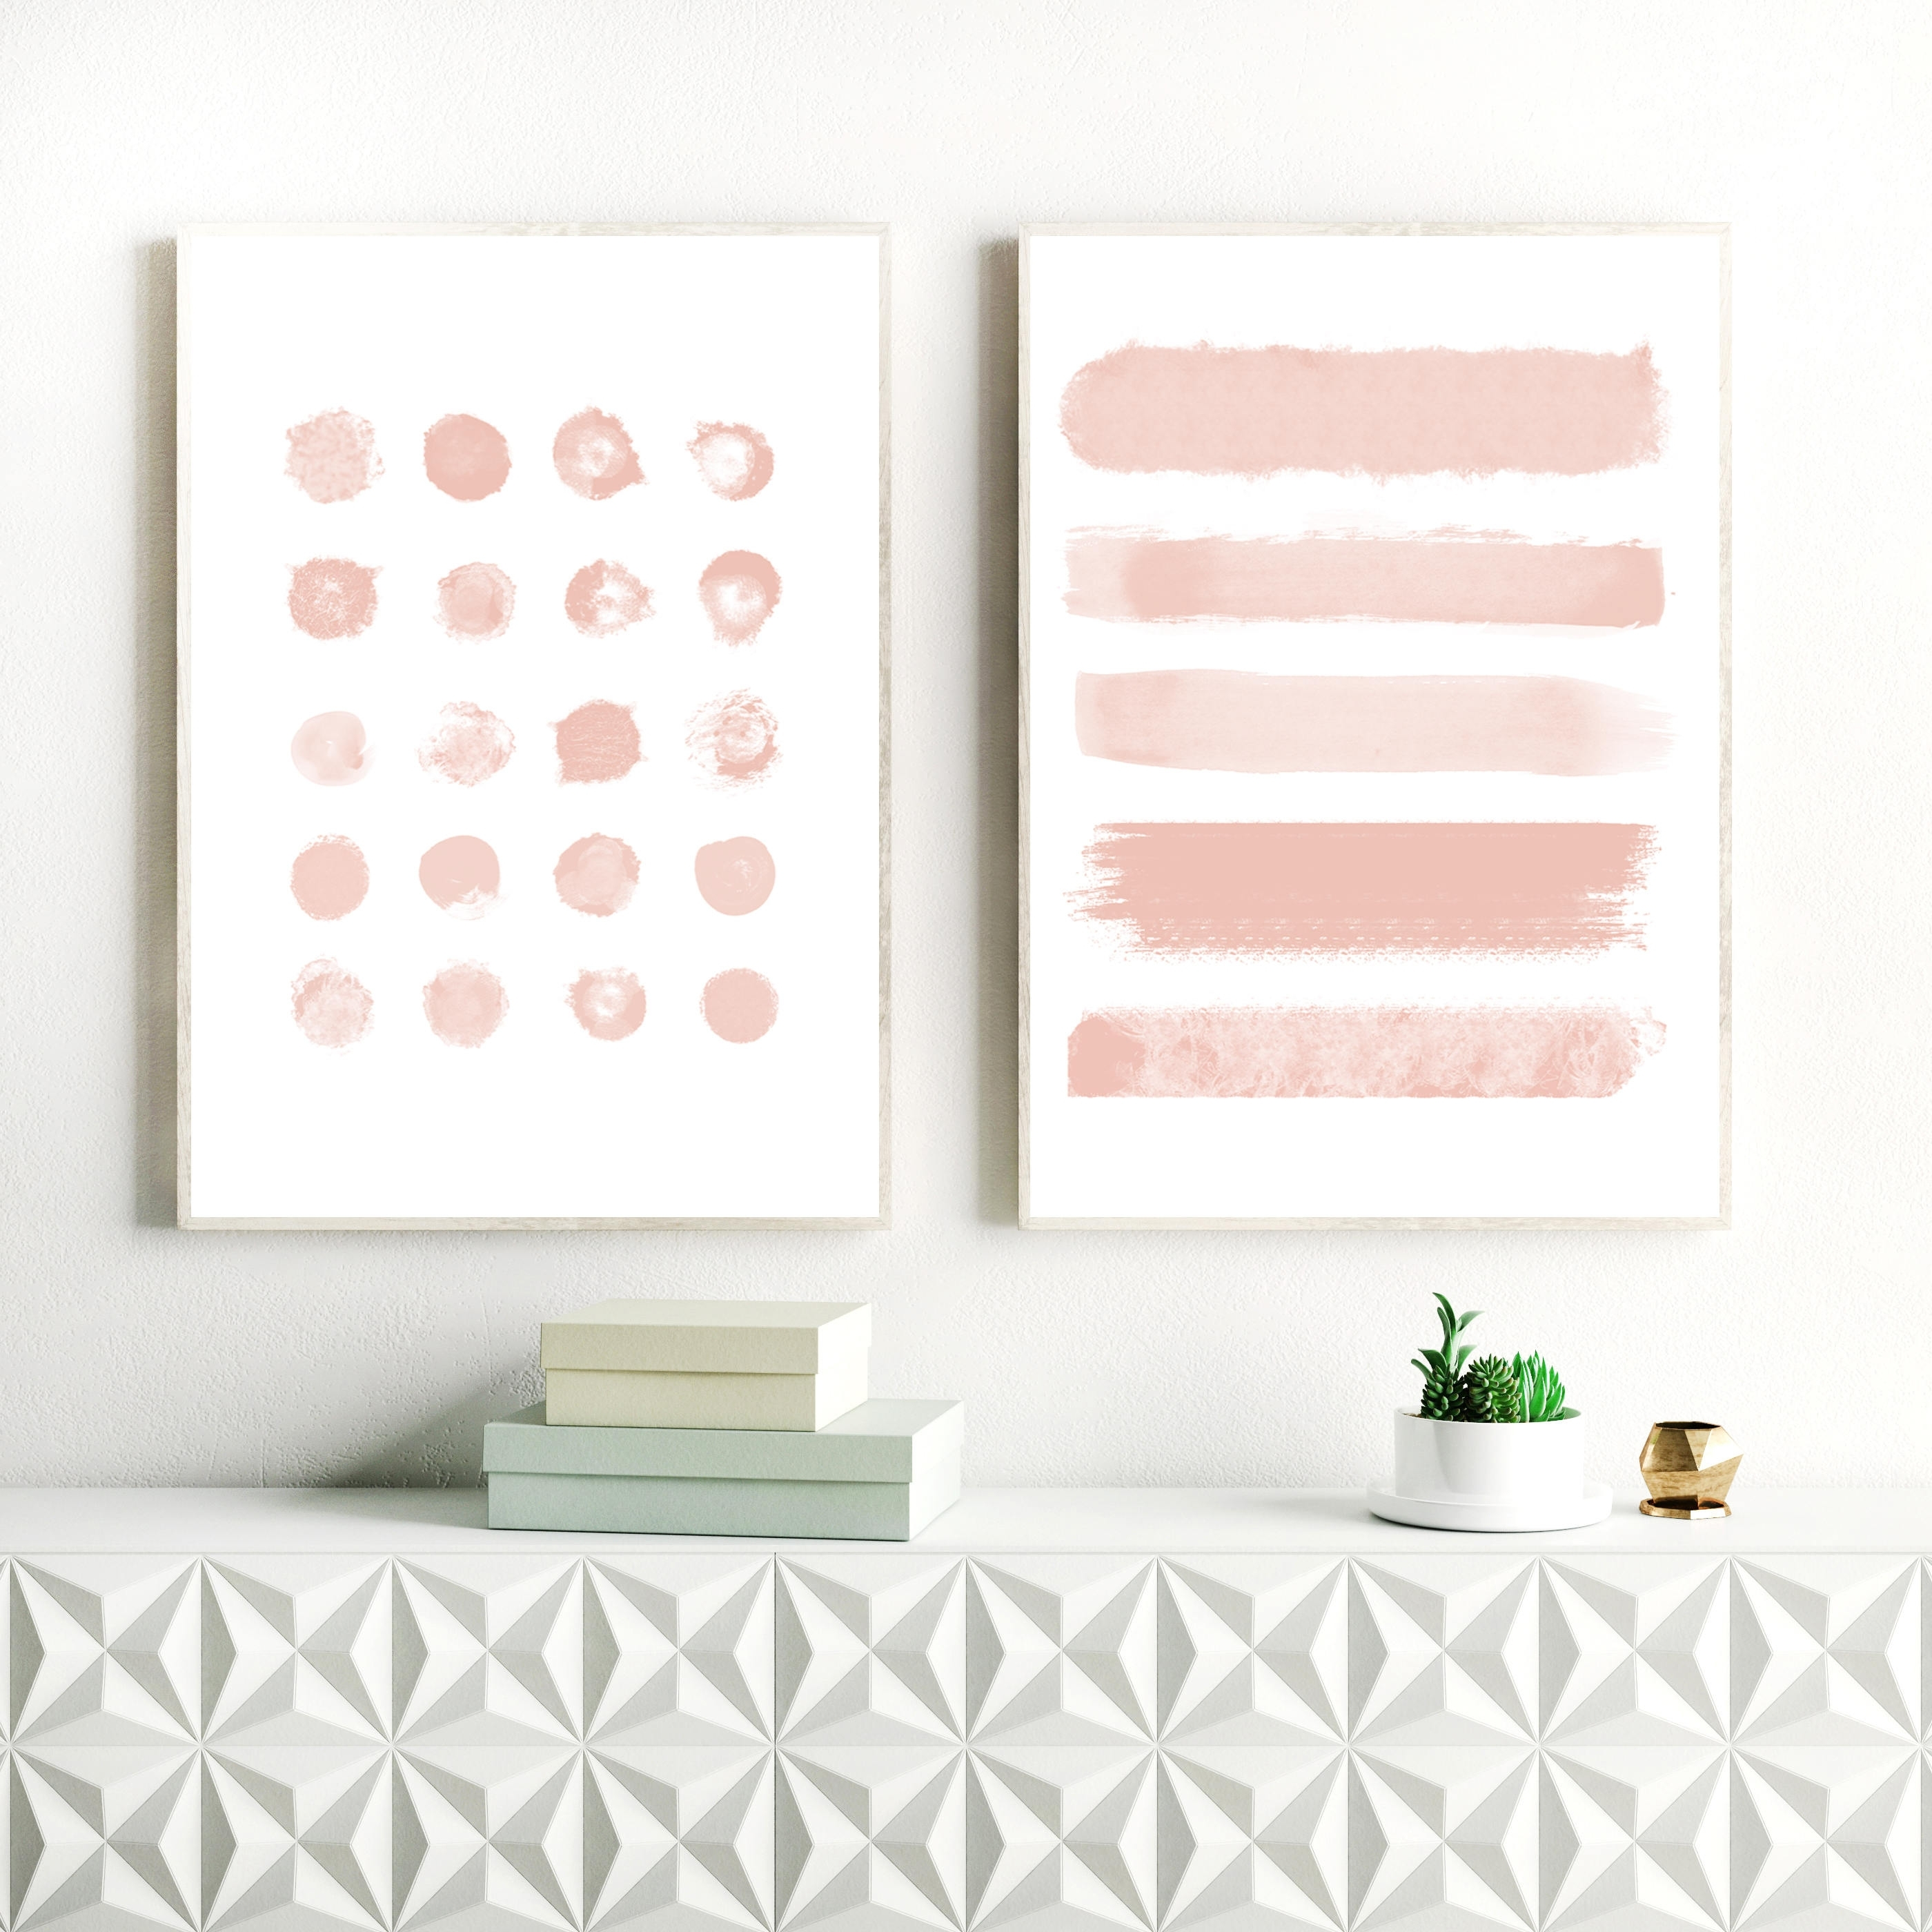 Blush Pink Abstract Art, Brushstrokes, Ink Blot Painting, Nursery Throughout Most Popular Pink Abstract Wall Art (View 13 of 15)